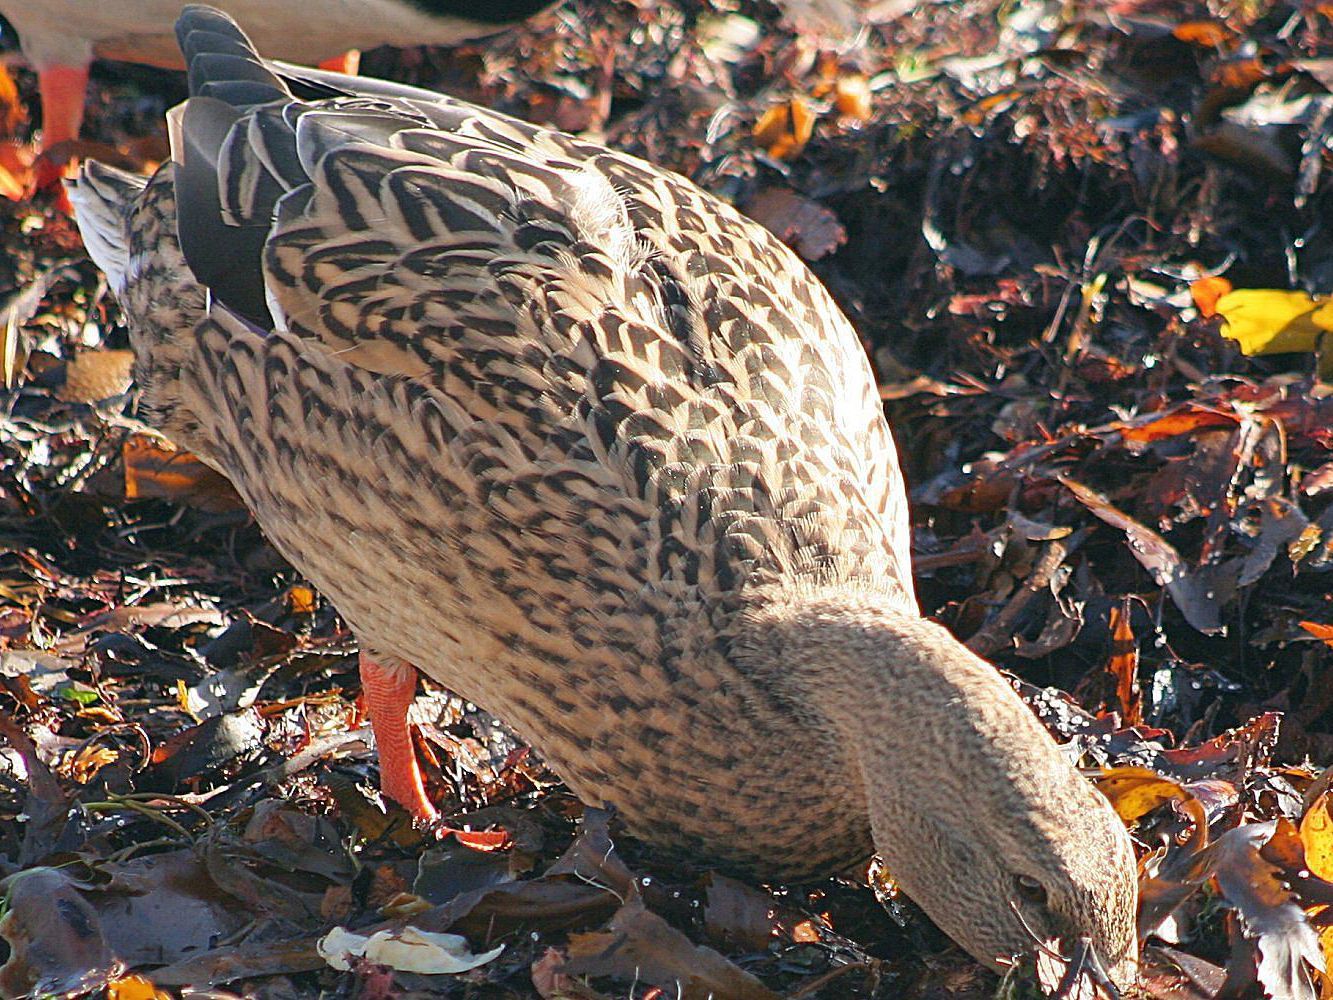 What Do Ducks Eat? - Diets and Feeding